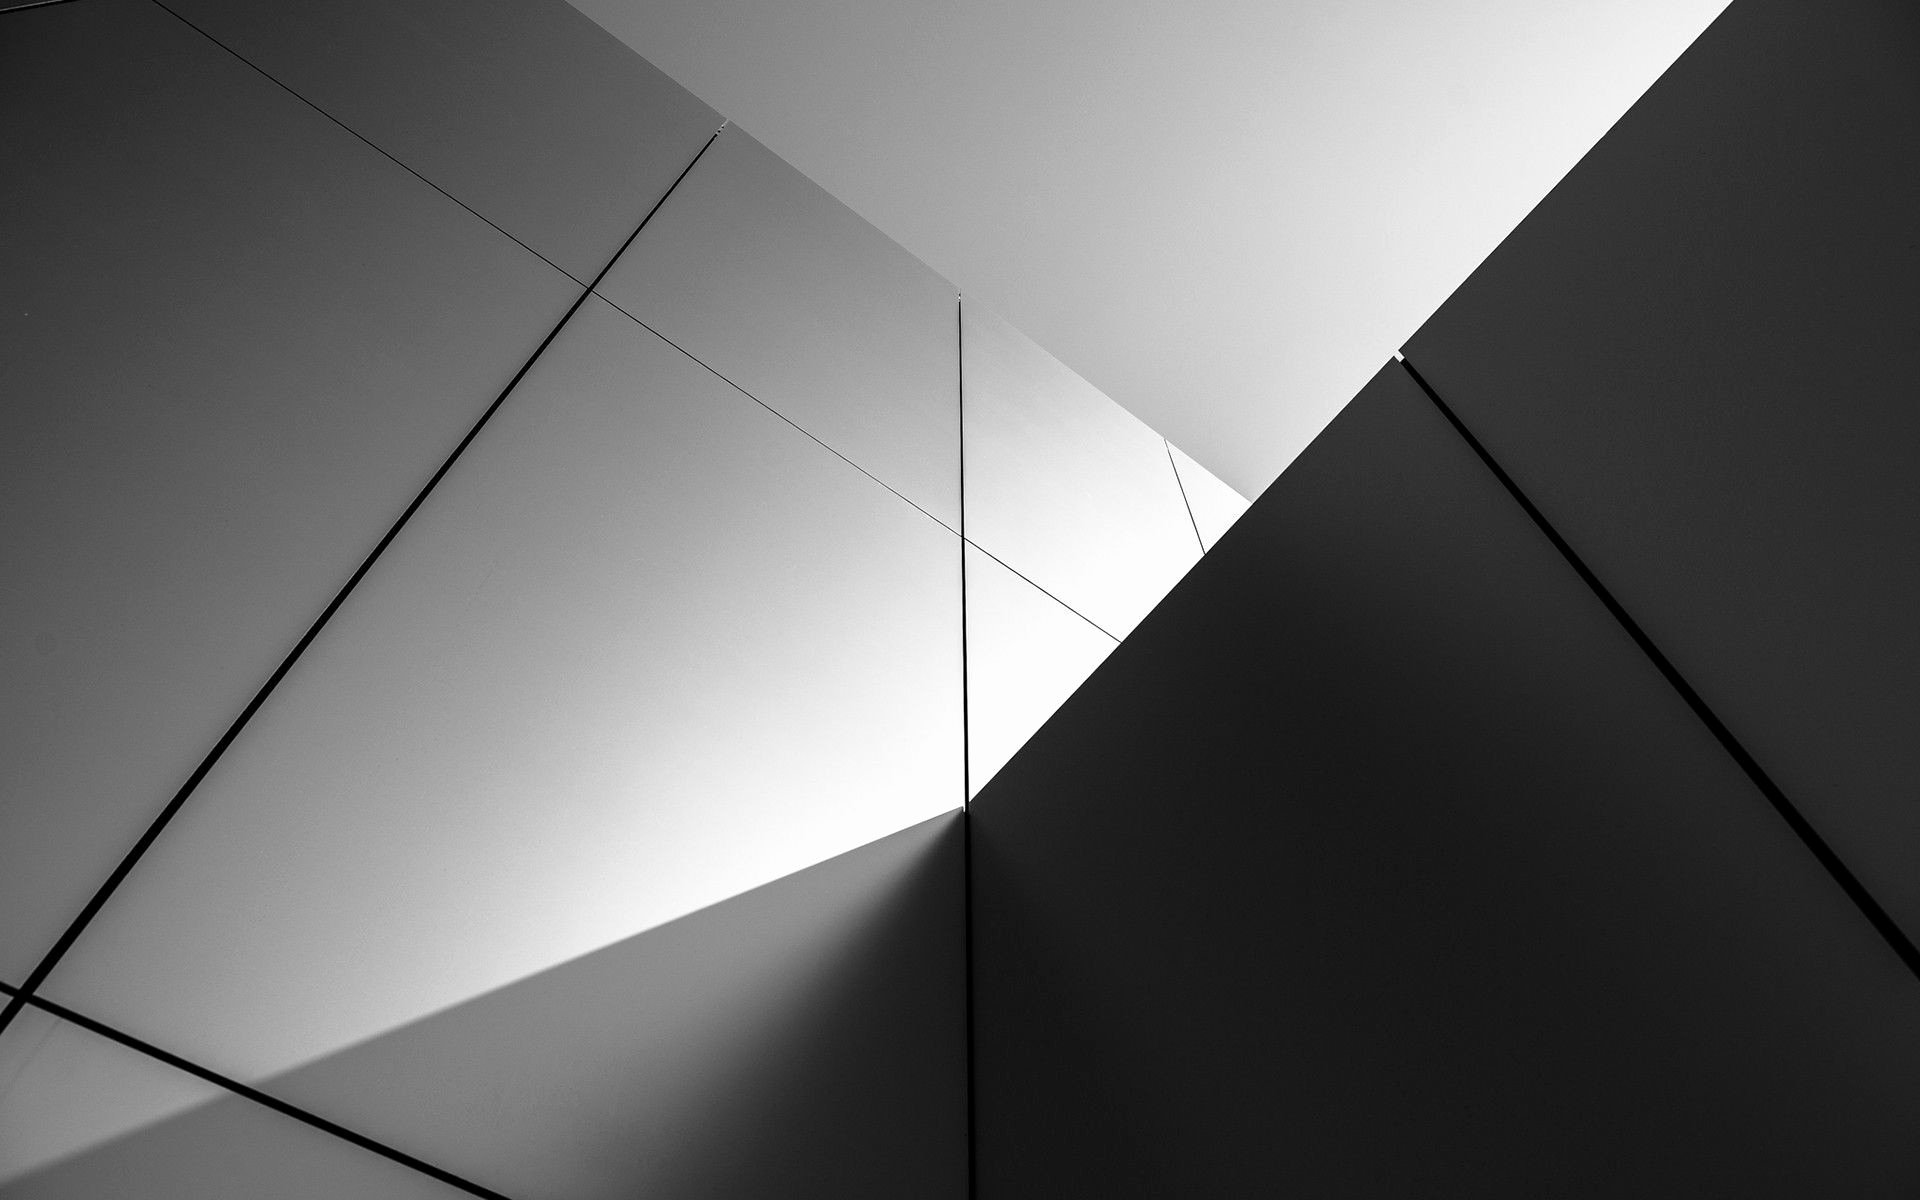 Black and White Abstract Pictures Beautiful Black and White Abstract Backgrounds 57 Images